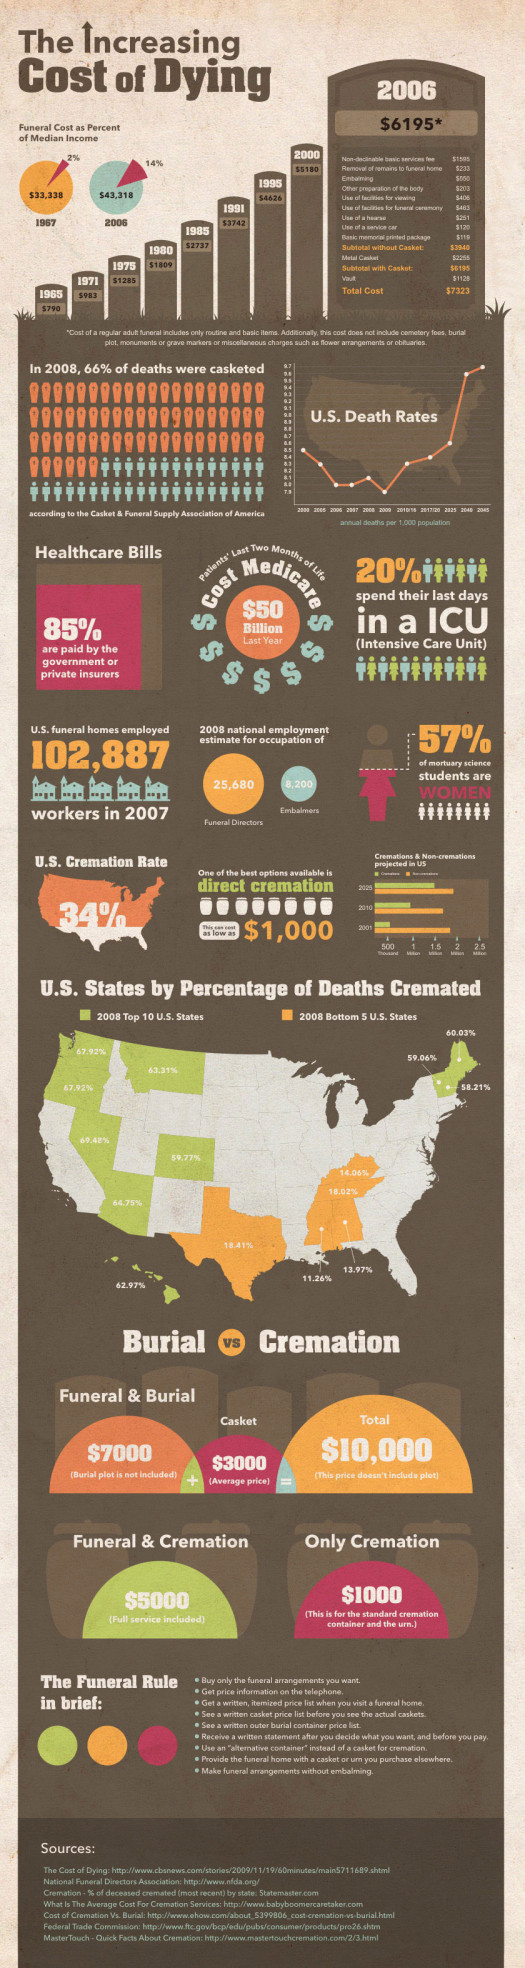 Theincreasingcostofdying 4e24afb696e00 w525 photo (data visualization)